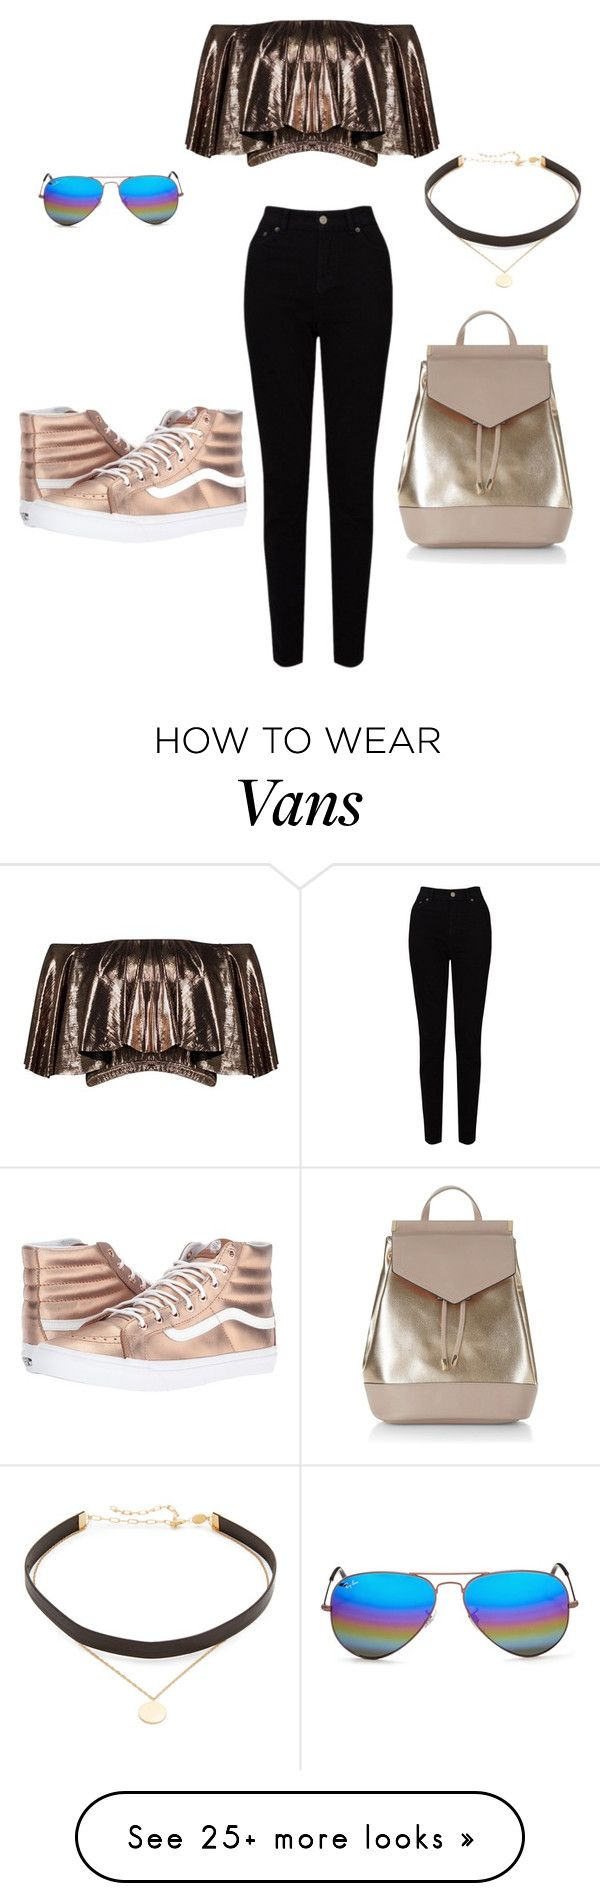 """""""Untitled #625"""" by rubysparks90 on Polyvore featuring Ray-Ban, Boohoo, EAST, Vans, New Look and Jennifer Zeuner"""